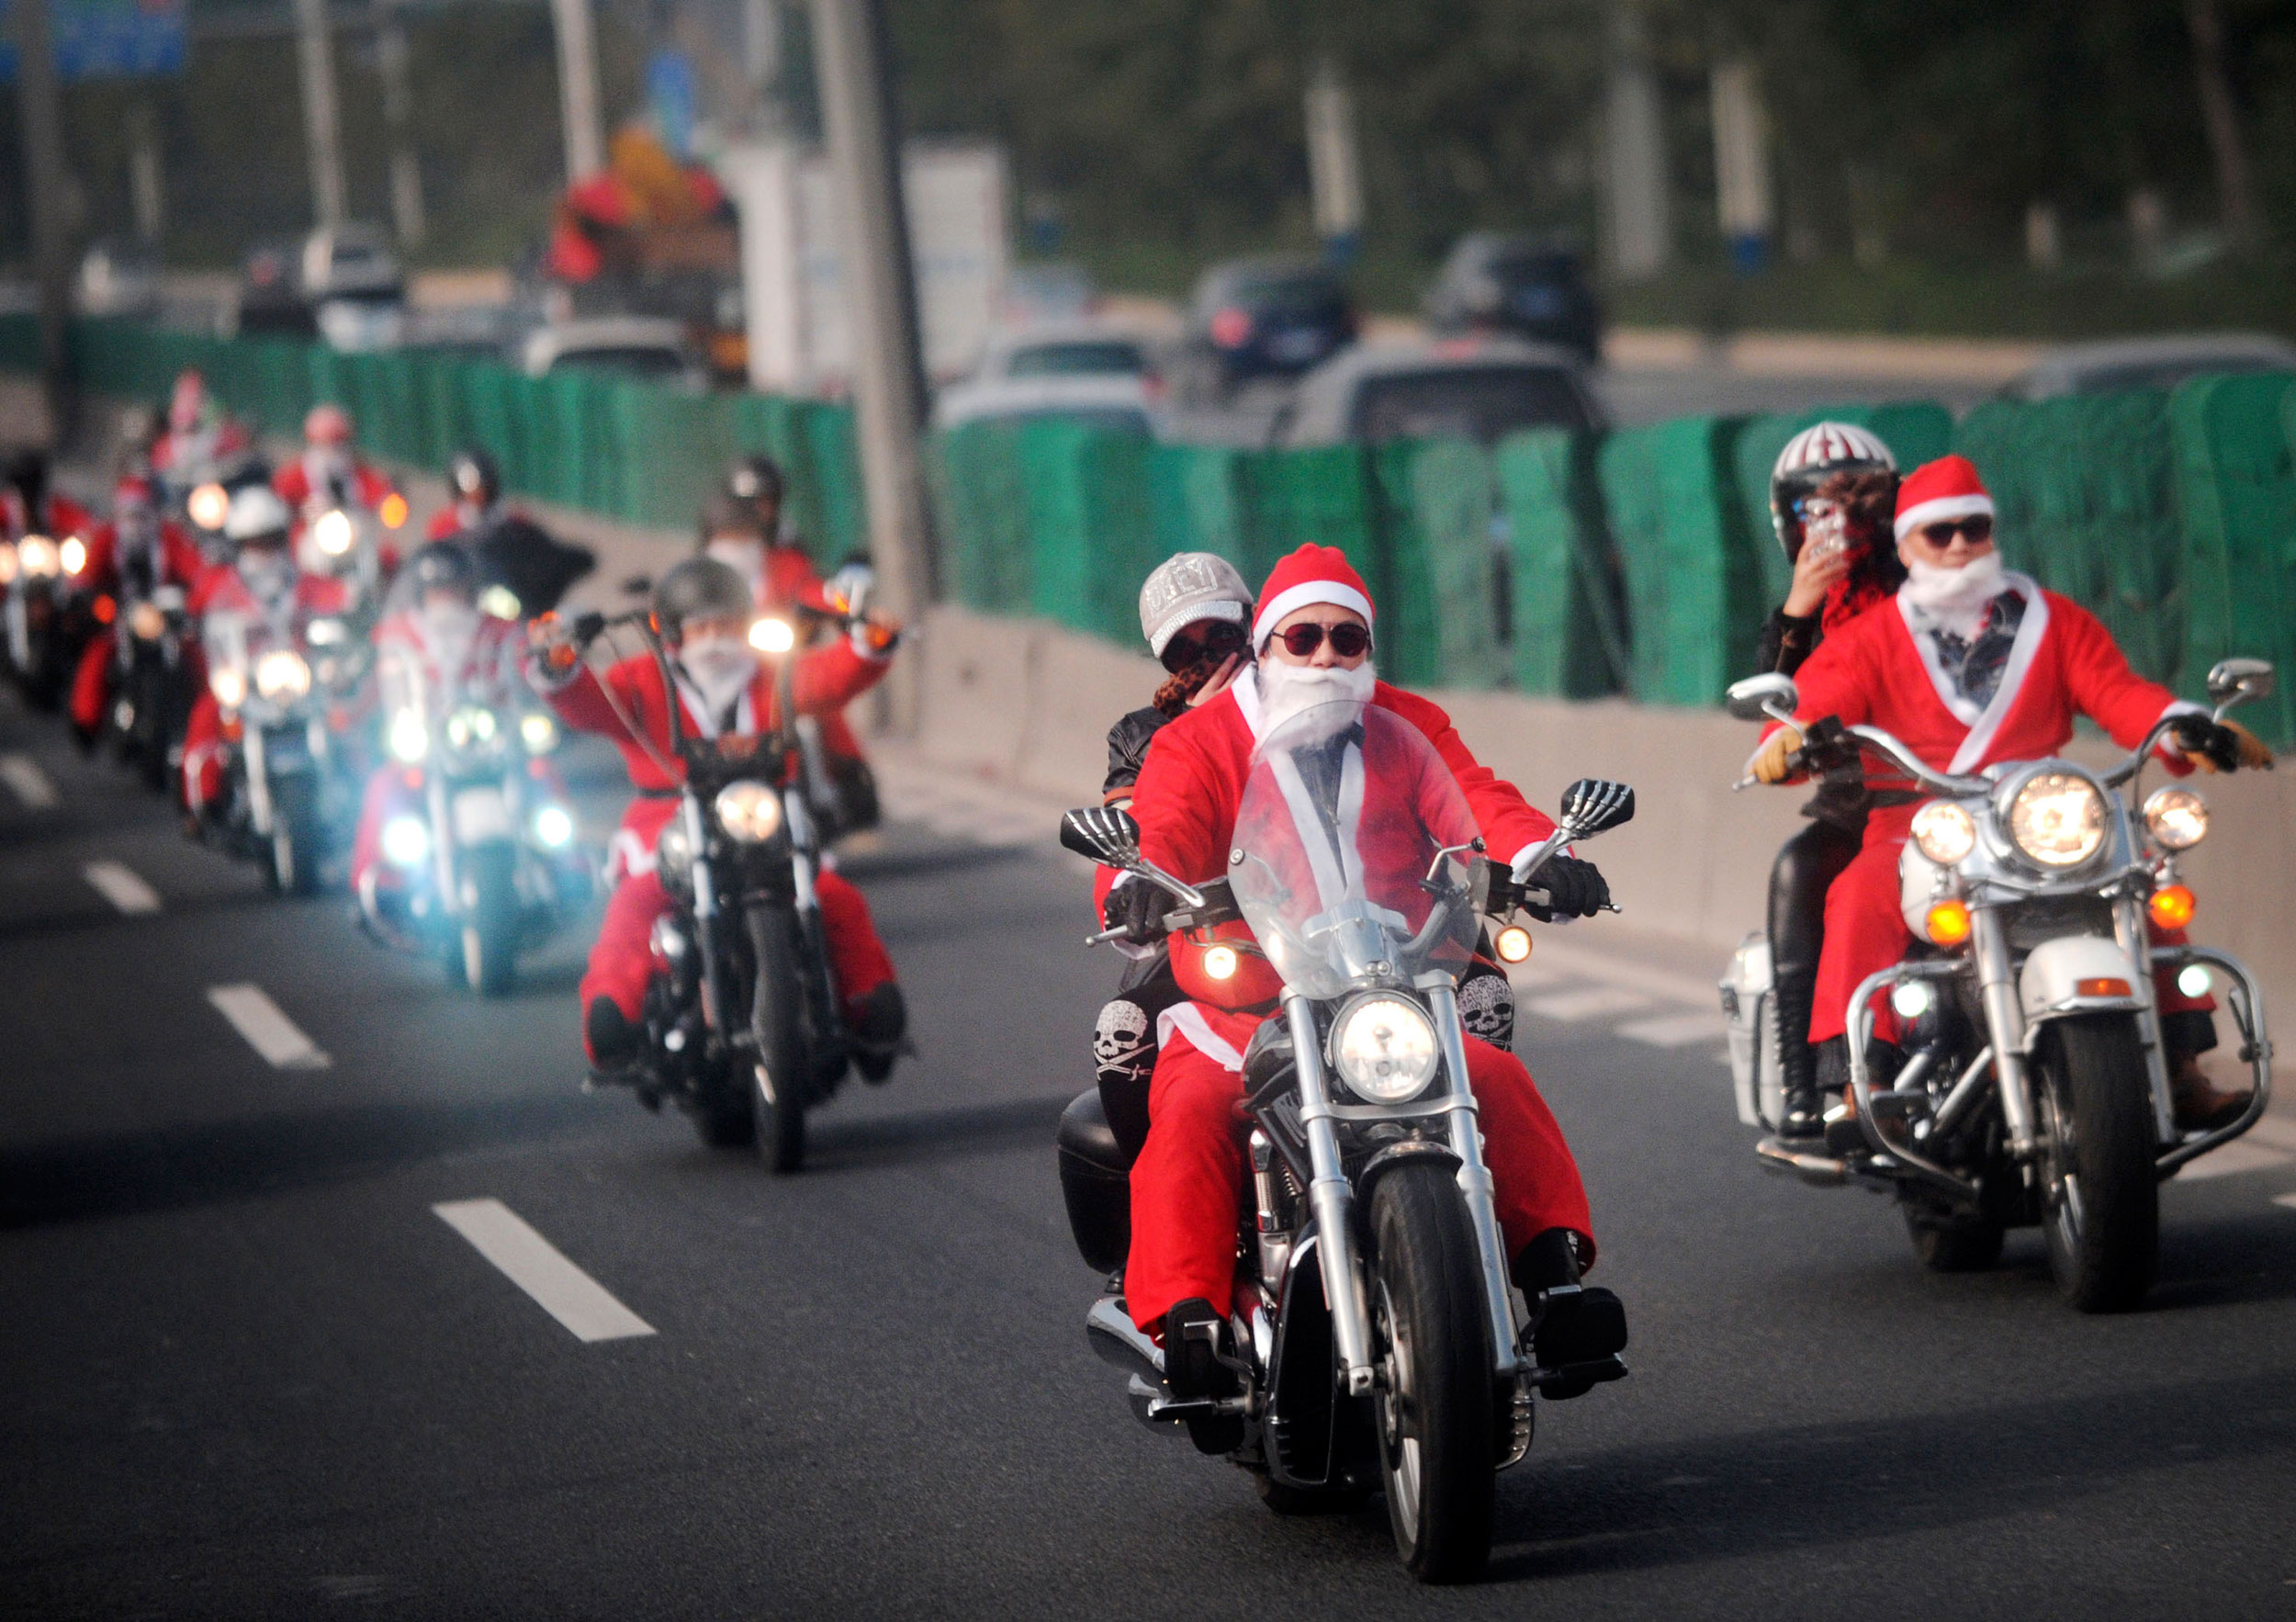 Owners of Harley-Davidson motorcycles wearing Santa Claus costumes ride along a street to give presents to elders at a nursing home during a promotional event celebrating Christmas in Guangzhou, Guangdong province on  Dec. 24, 2014.